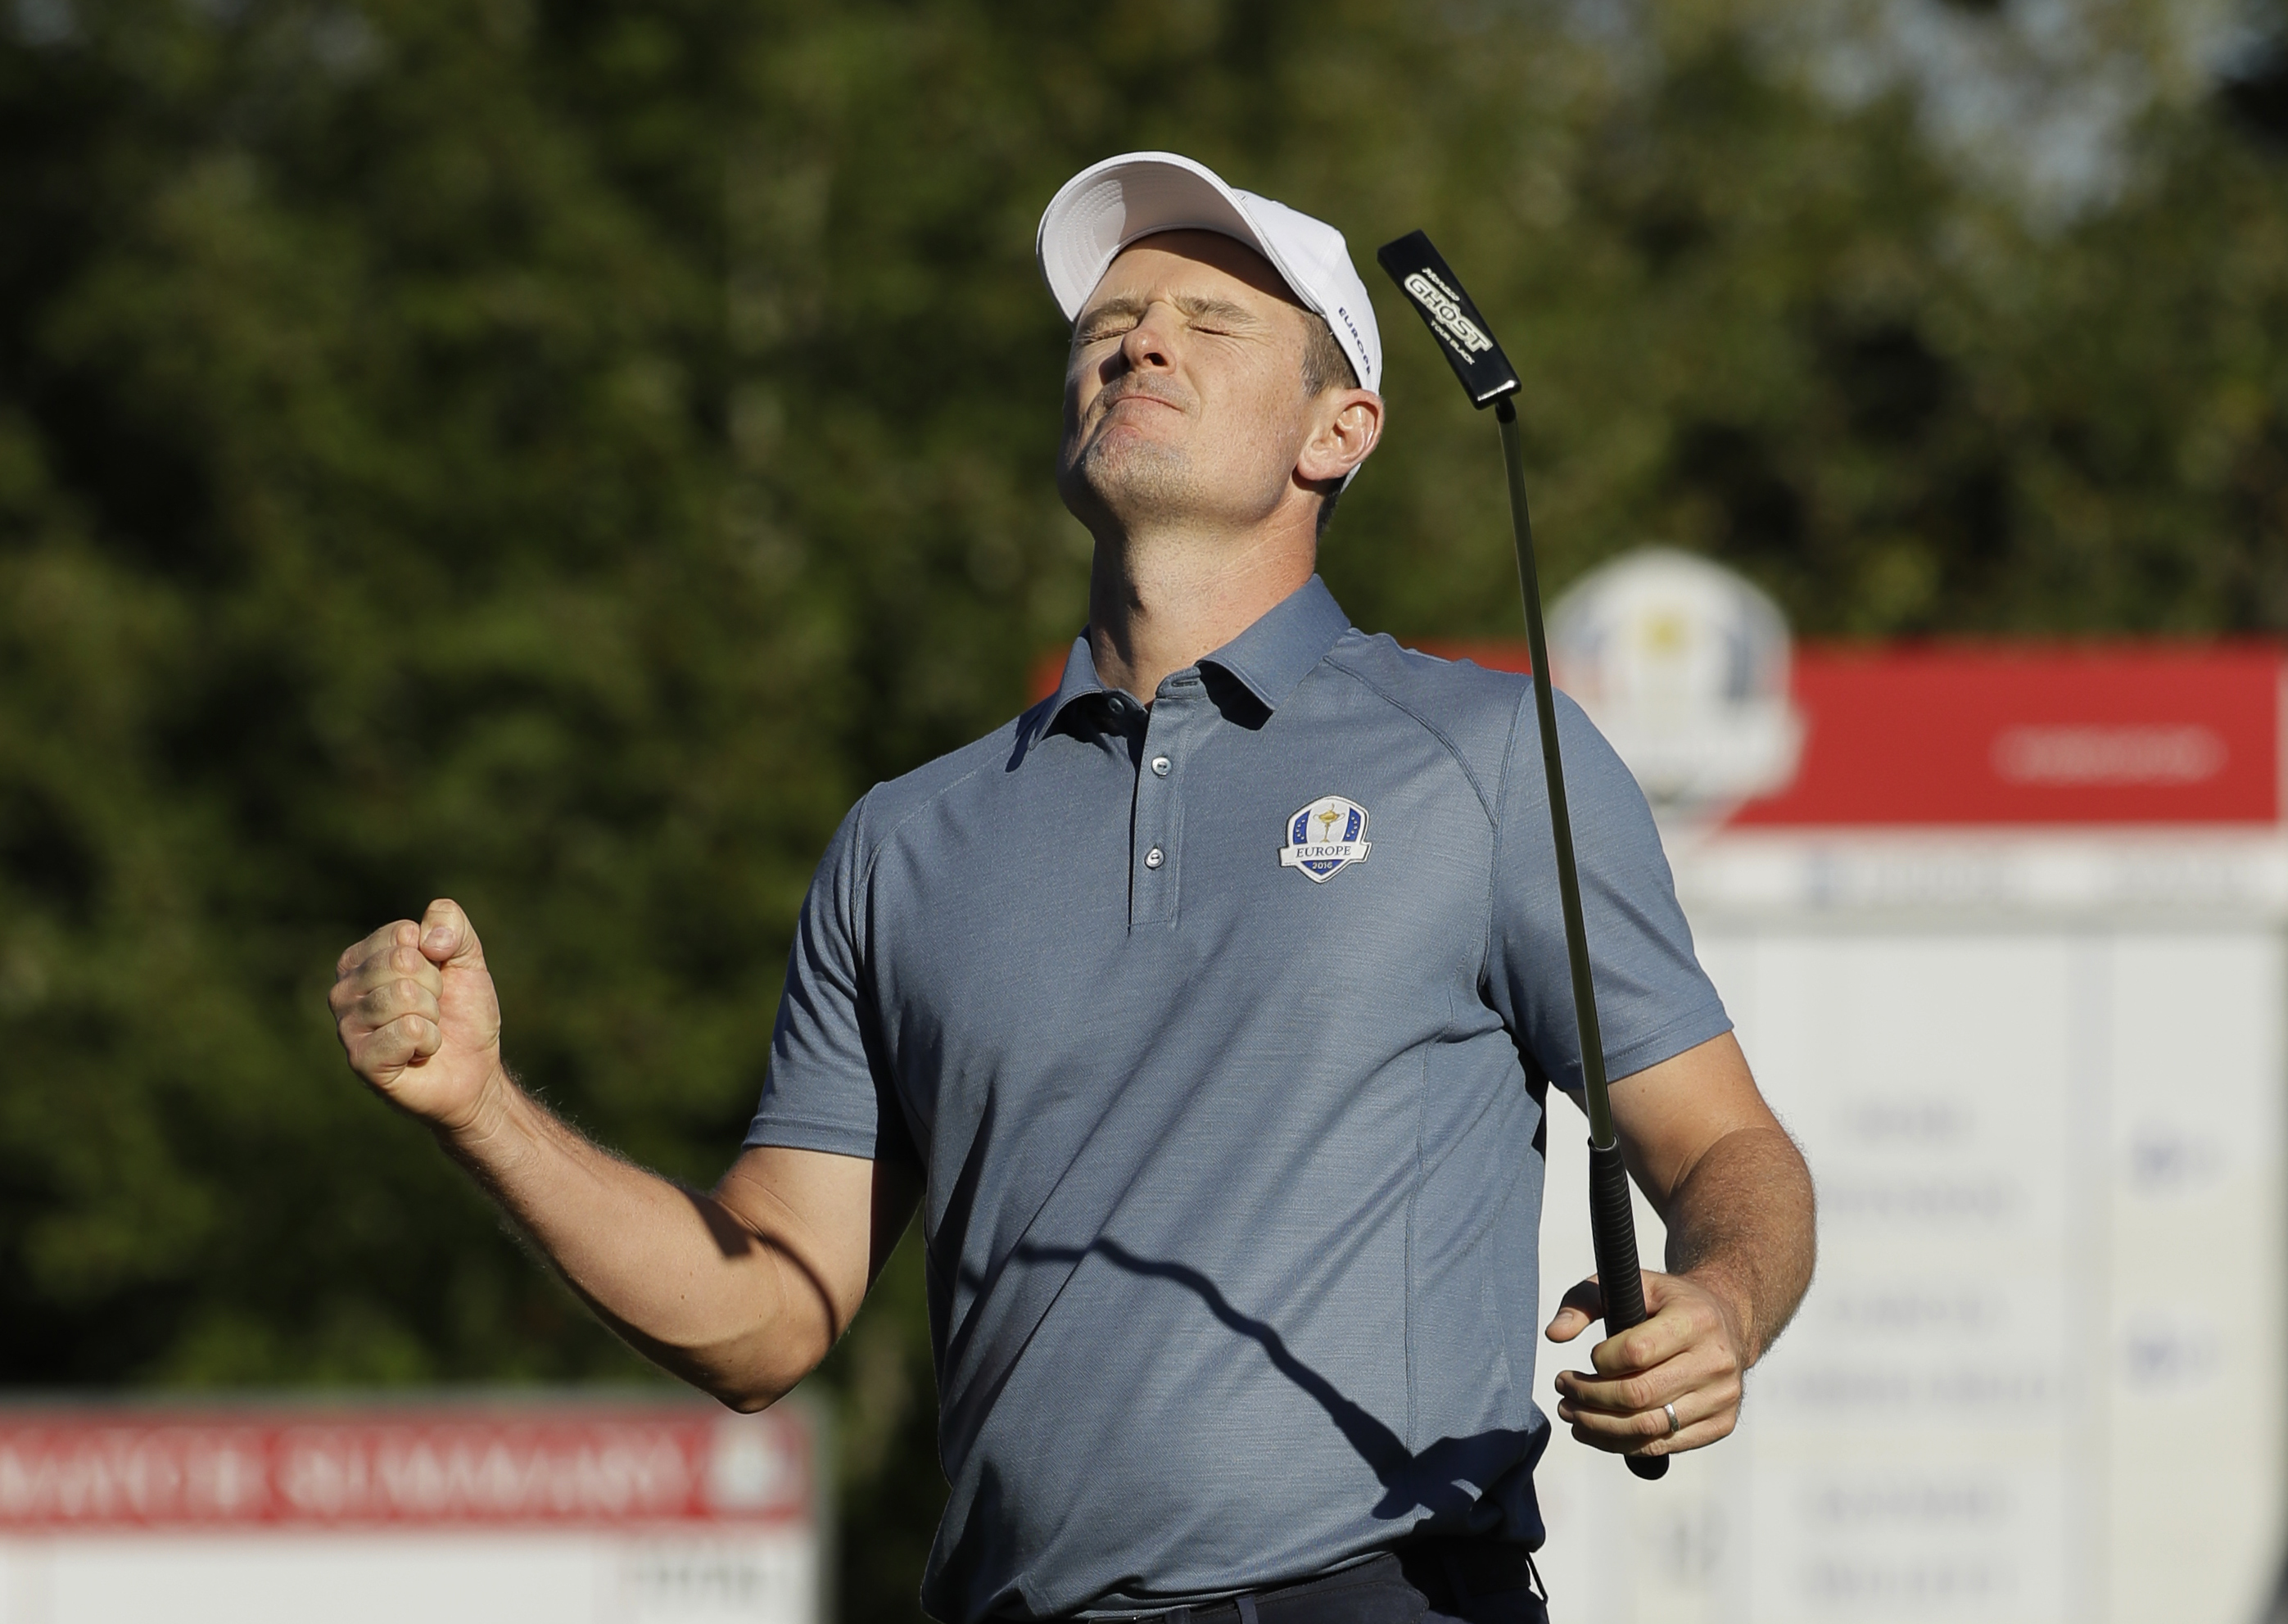 Europes Justin Rose reacts after making a birdie on the 14th hole to win the match during a four-balls match at the Ryder Cup golf tournament Friday, Sept. 30, 2016, at Hazeltine National Golf Club in Chaska, Minn. (AP Photo/David J. Phillip)